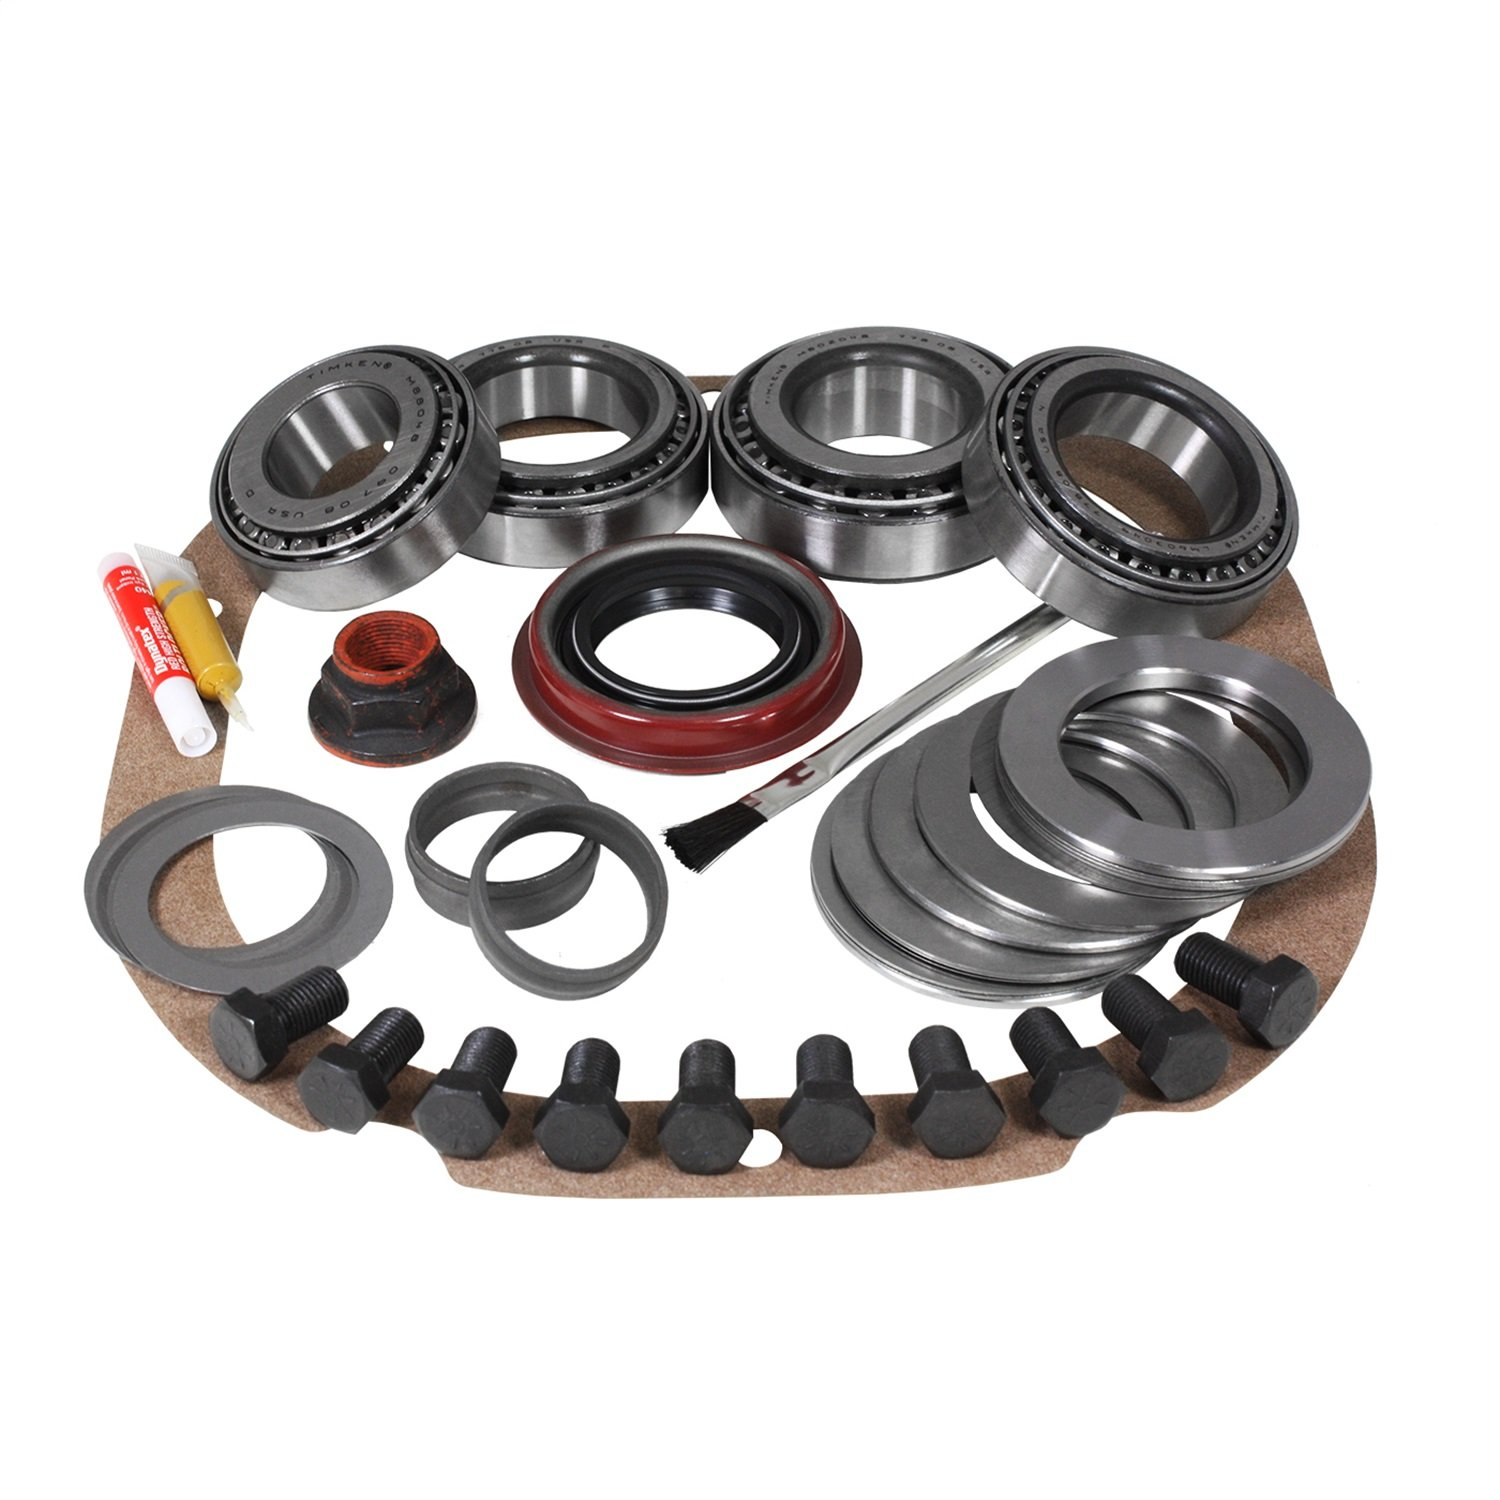 USA Standard Gear (ZK F8.8-B) Master Overhaul Kit for Ford F150/Mustang Differential